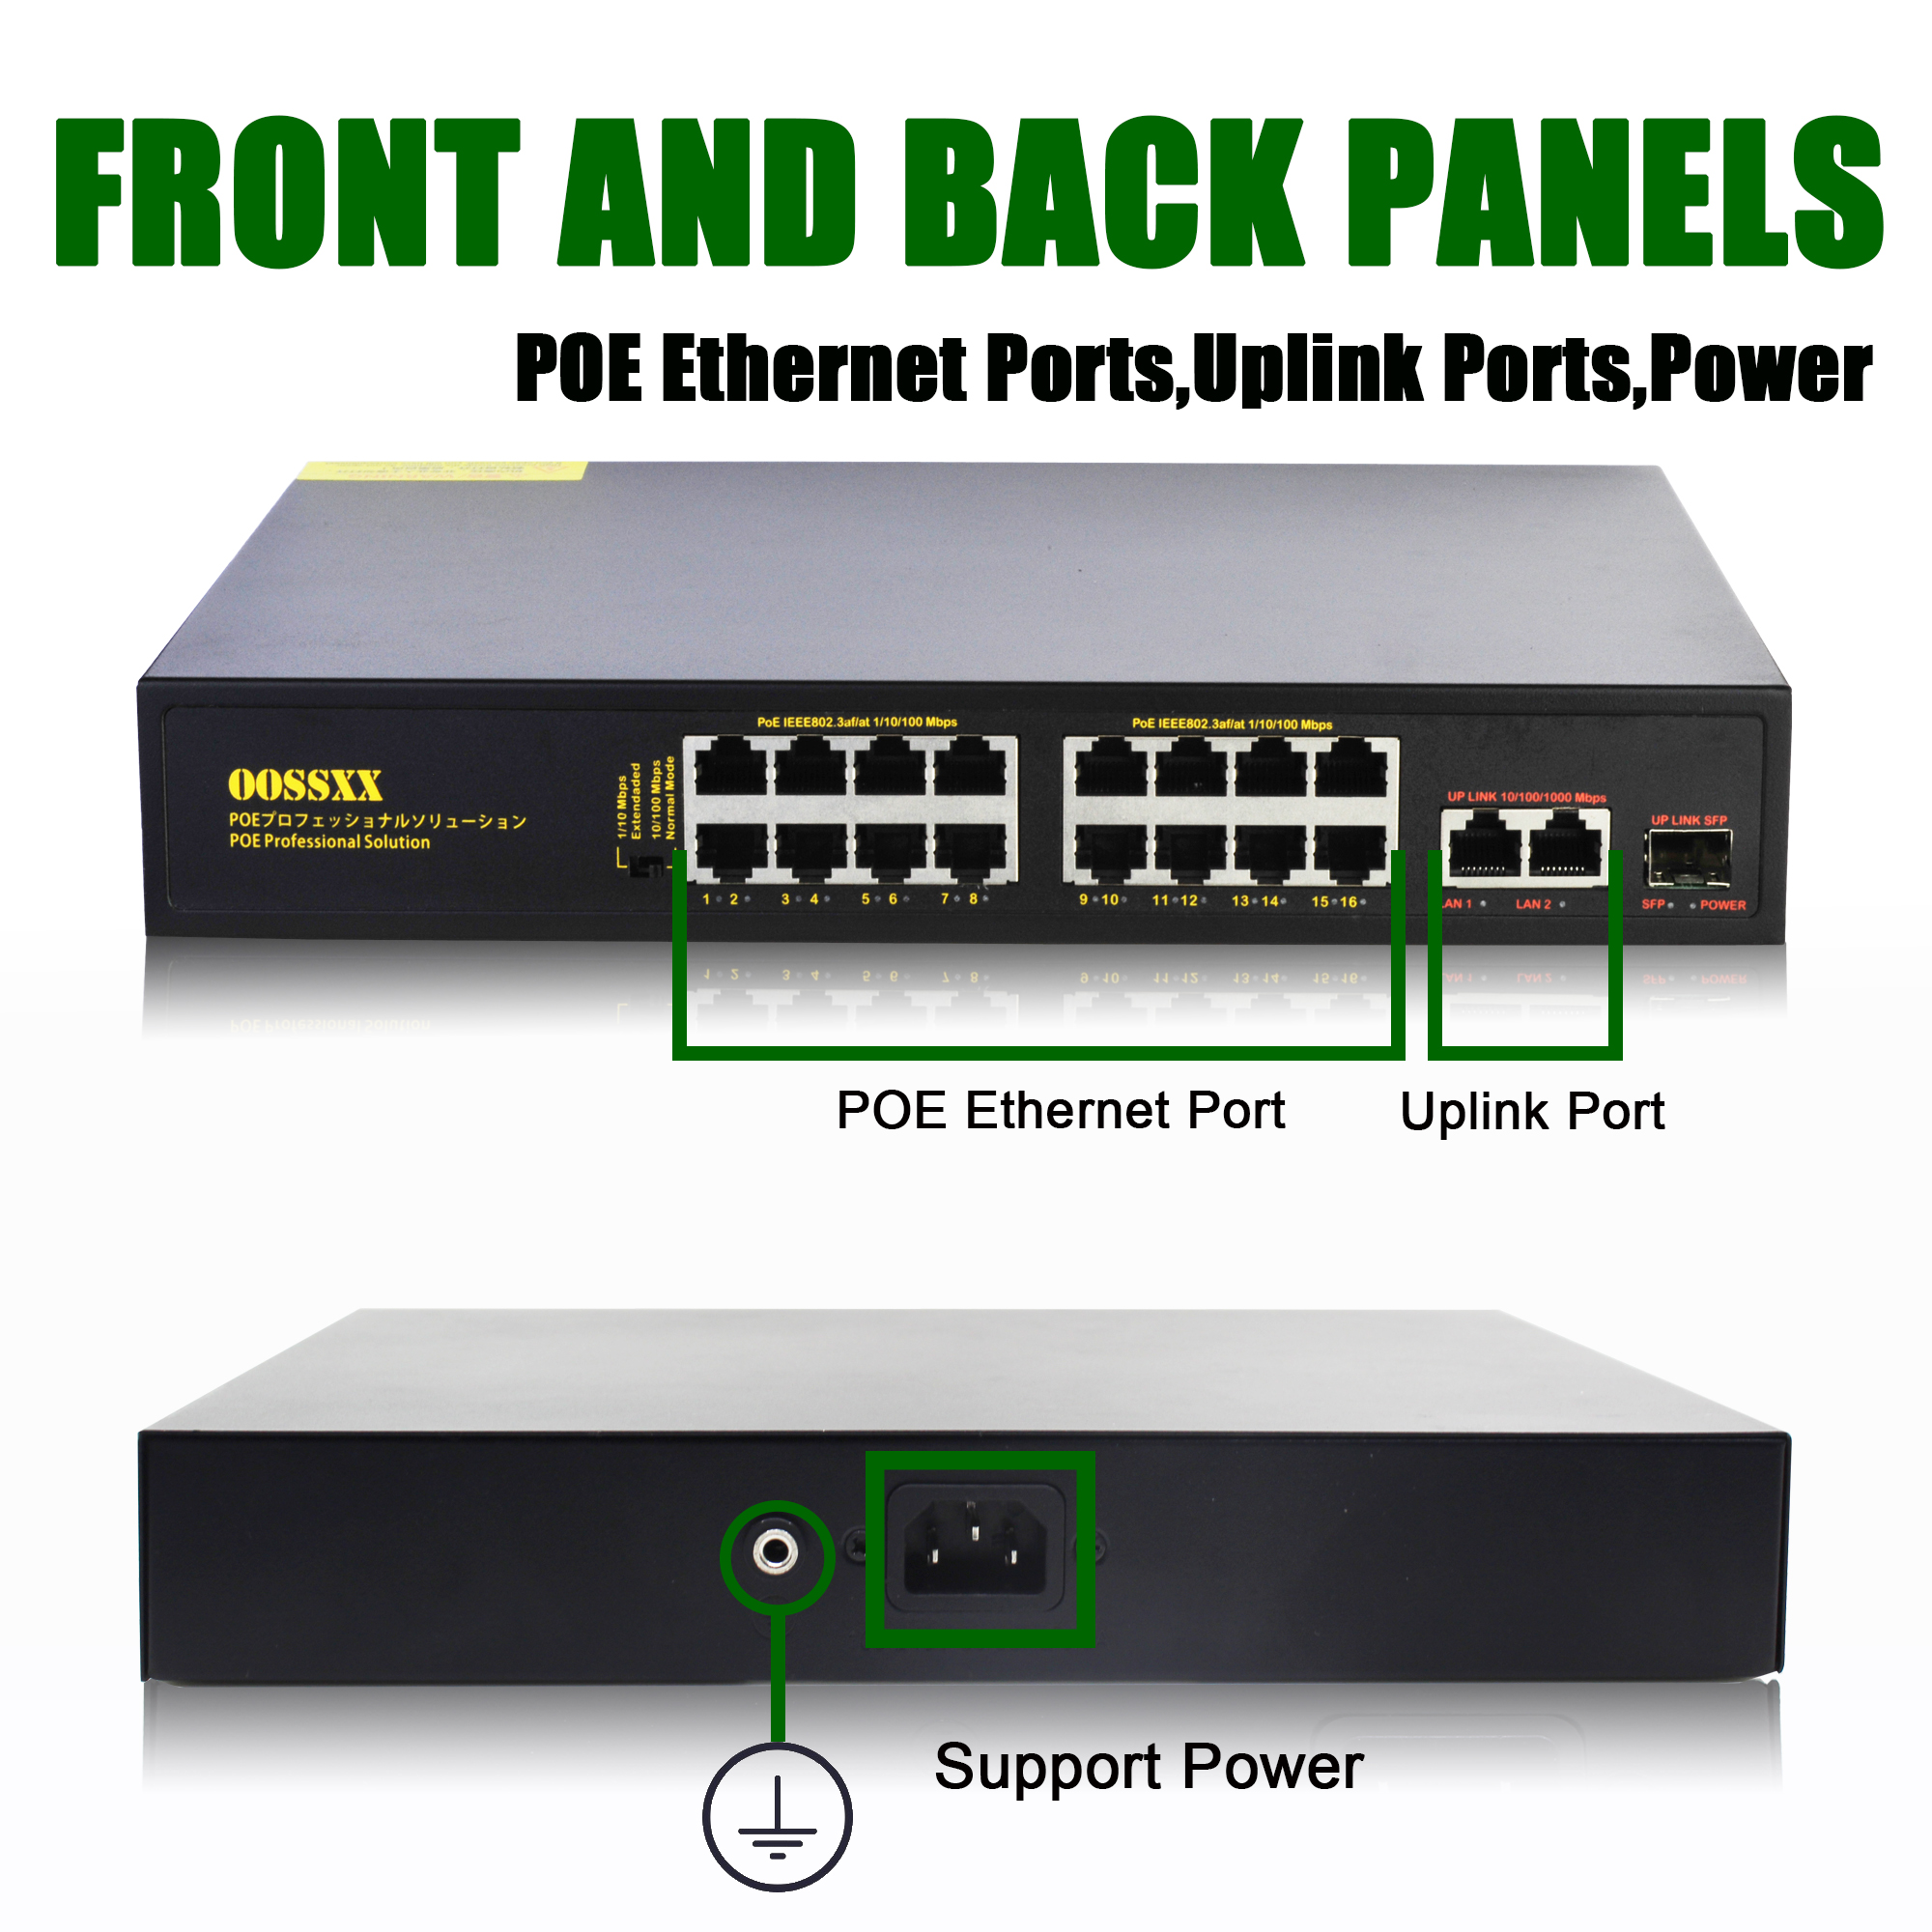 16 Port Poe Network Switch Ethernet With RJ45 Network Ports IEEE 802.3 Af/at Suitable For CCTV Camera System